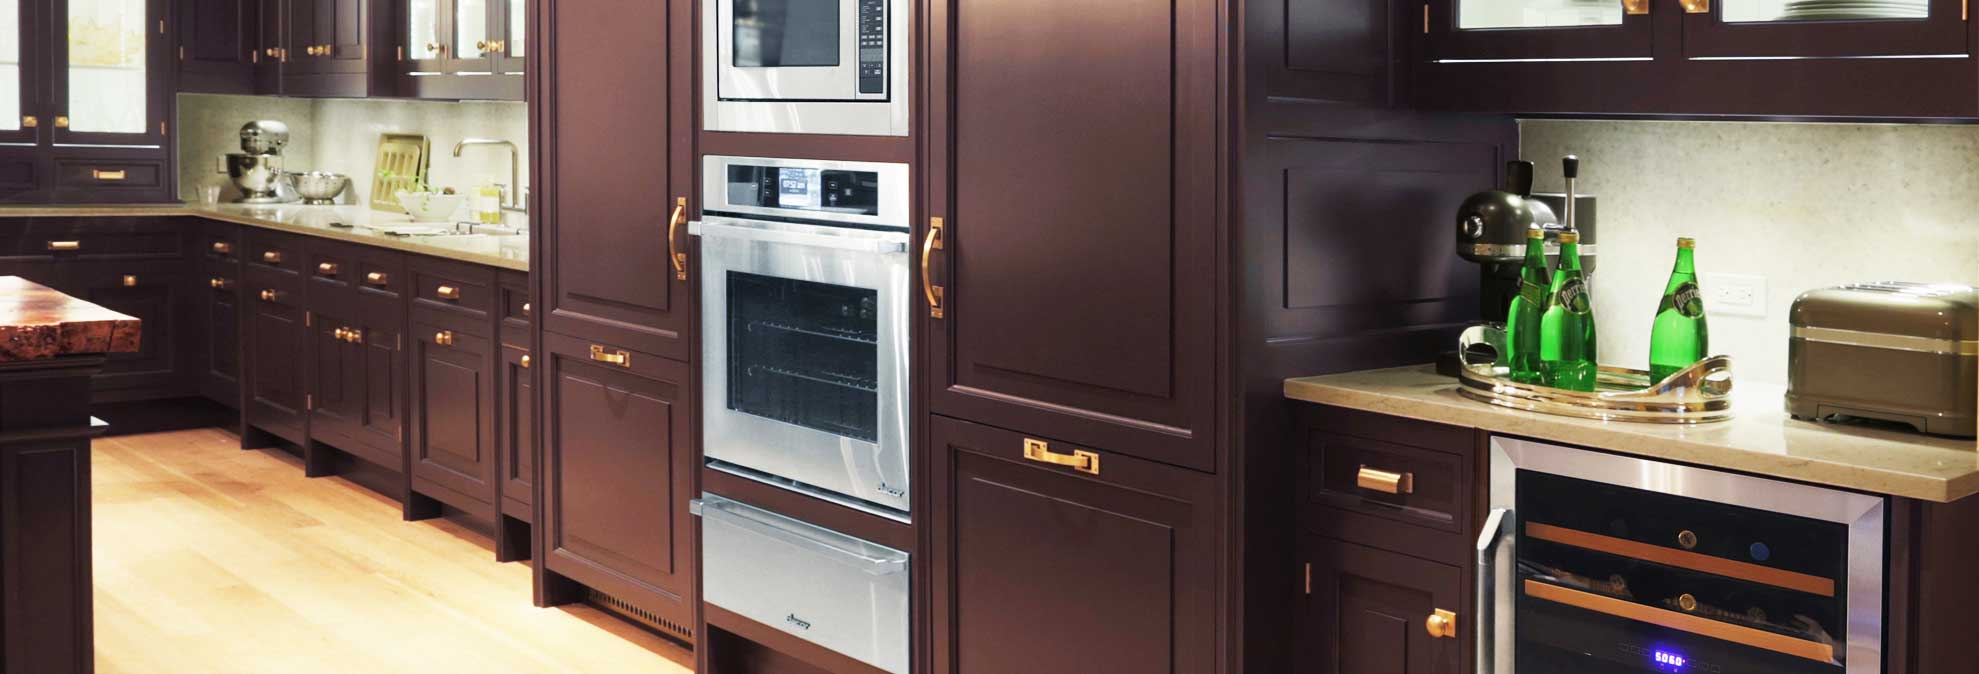 best kitchen cabinet buying guide consumer reports buying costco kitchen cabinets cabinet doors tips ikea